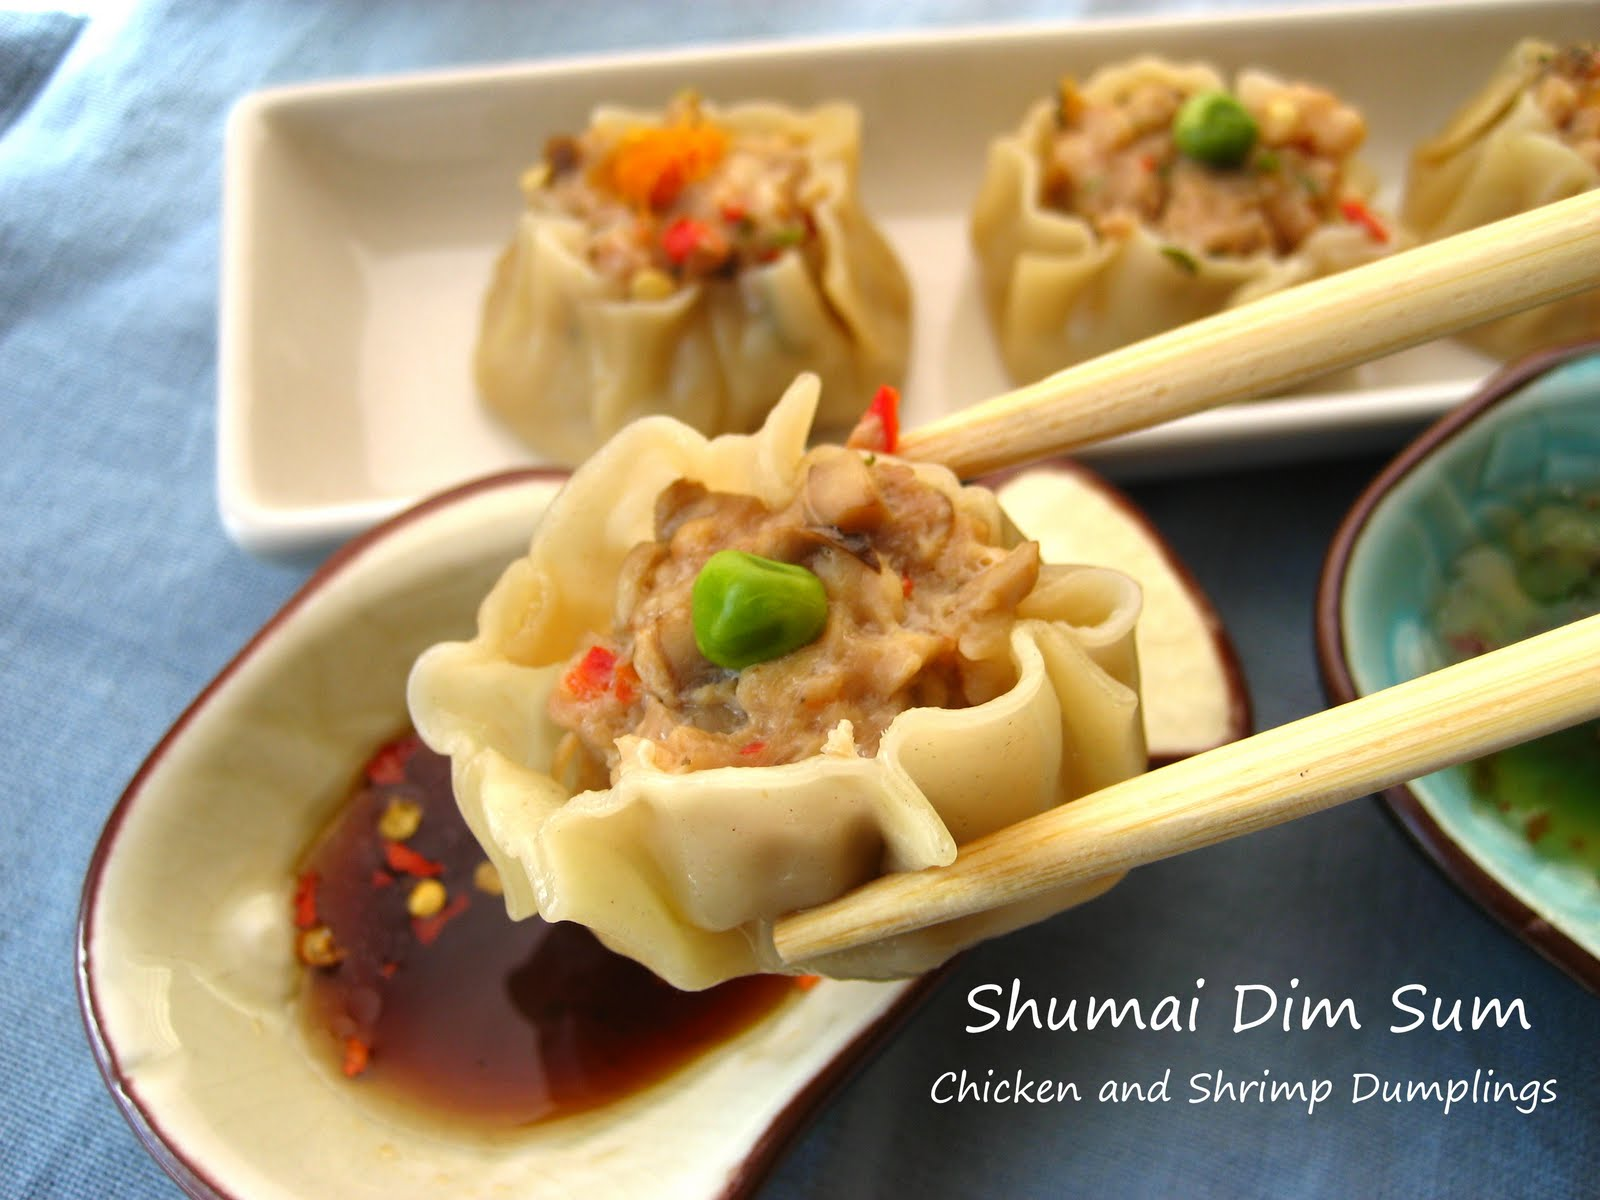 ... In Montana: Shumai...Chinese Dim Sum (Chicken and Shrimp Dumpling